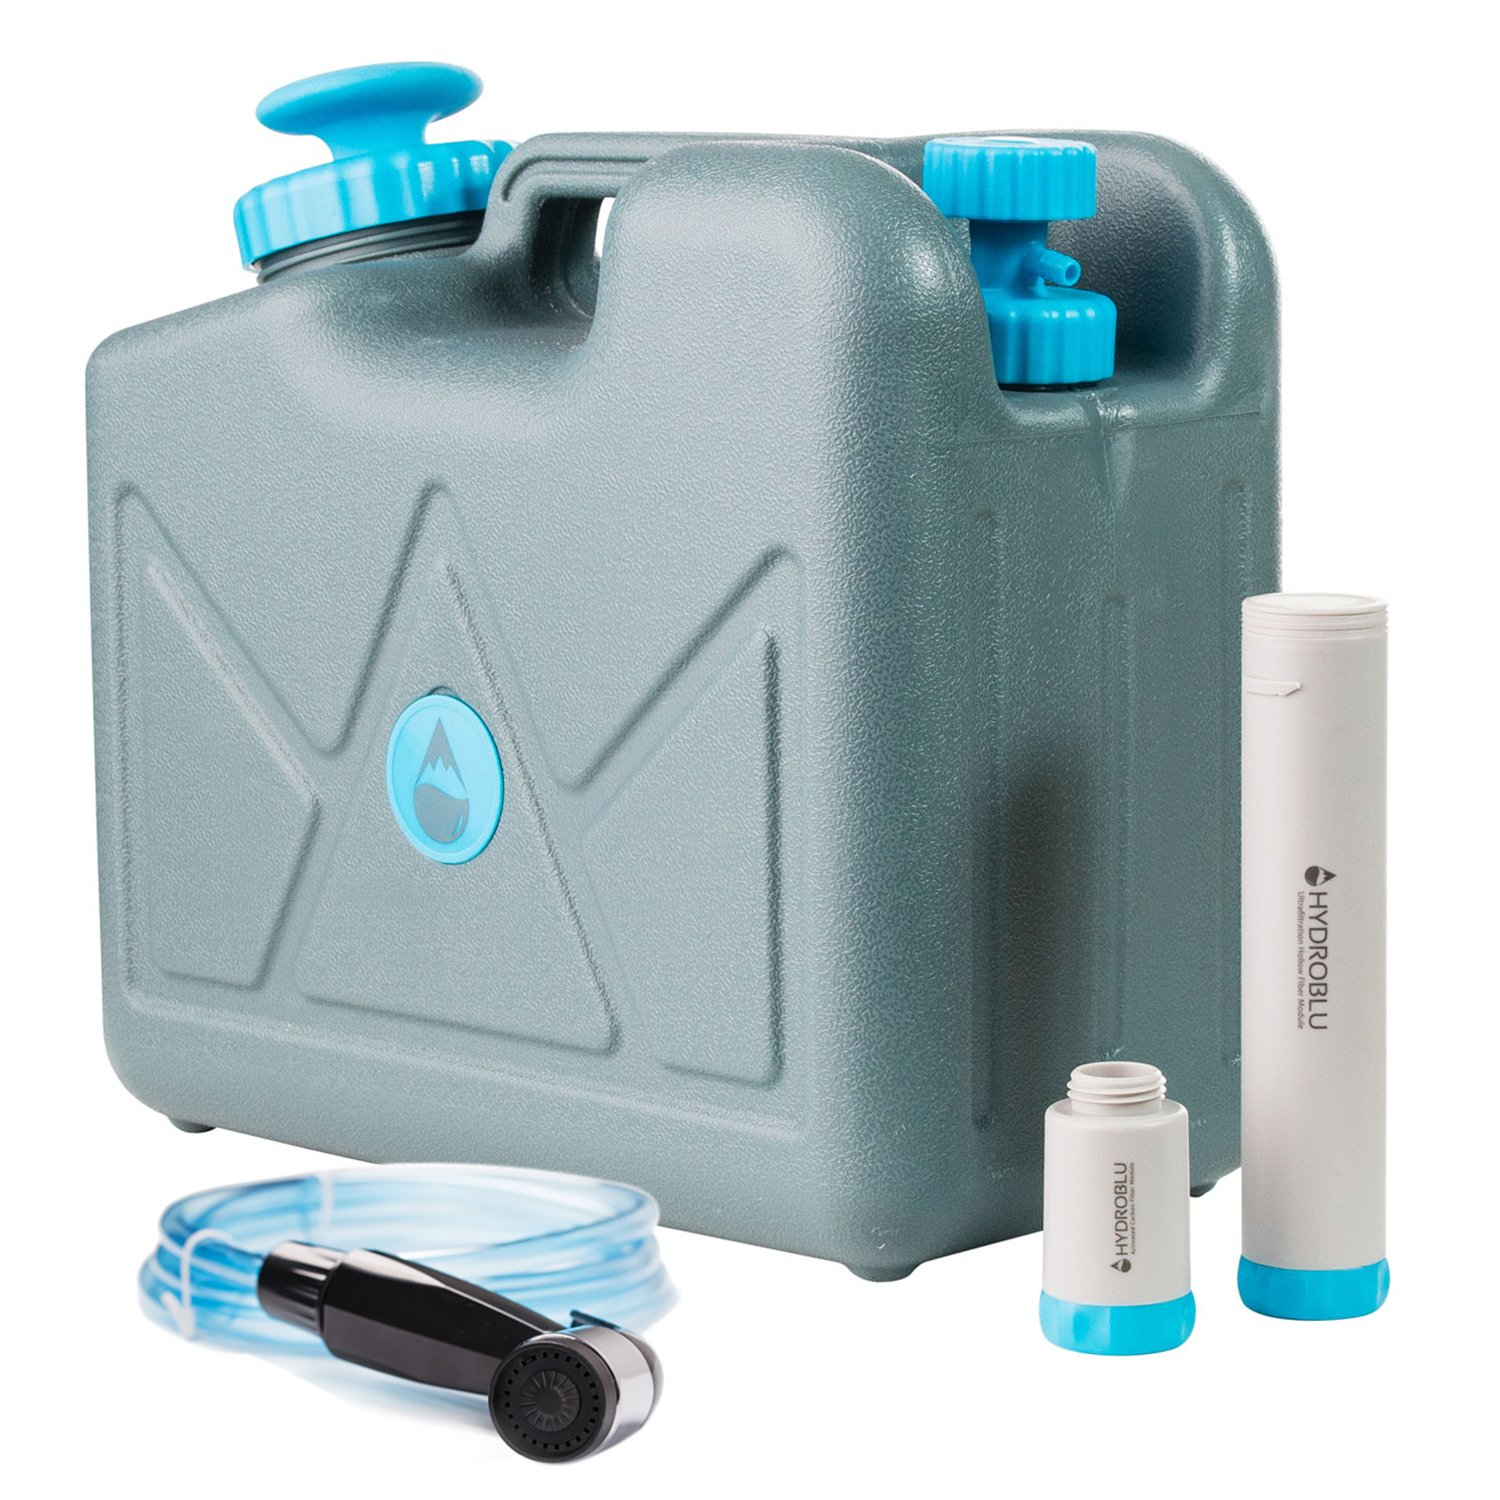 HYDROBLU Pressurized Water Can Water Filter-Activated Carbon and Hollow Fiber Filters with Shower Head Attachment; Water Can for Travel, Camping, and Emergency Preparedness -a Life Saving Water System